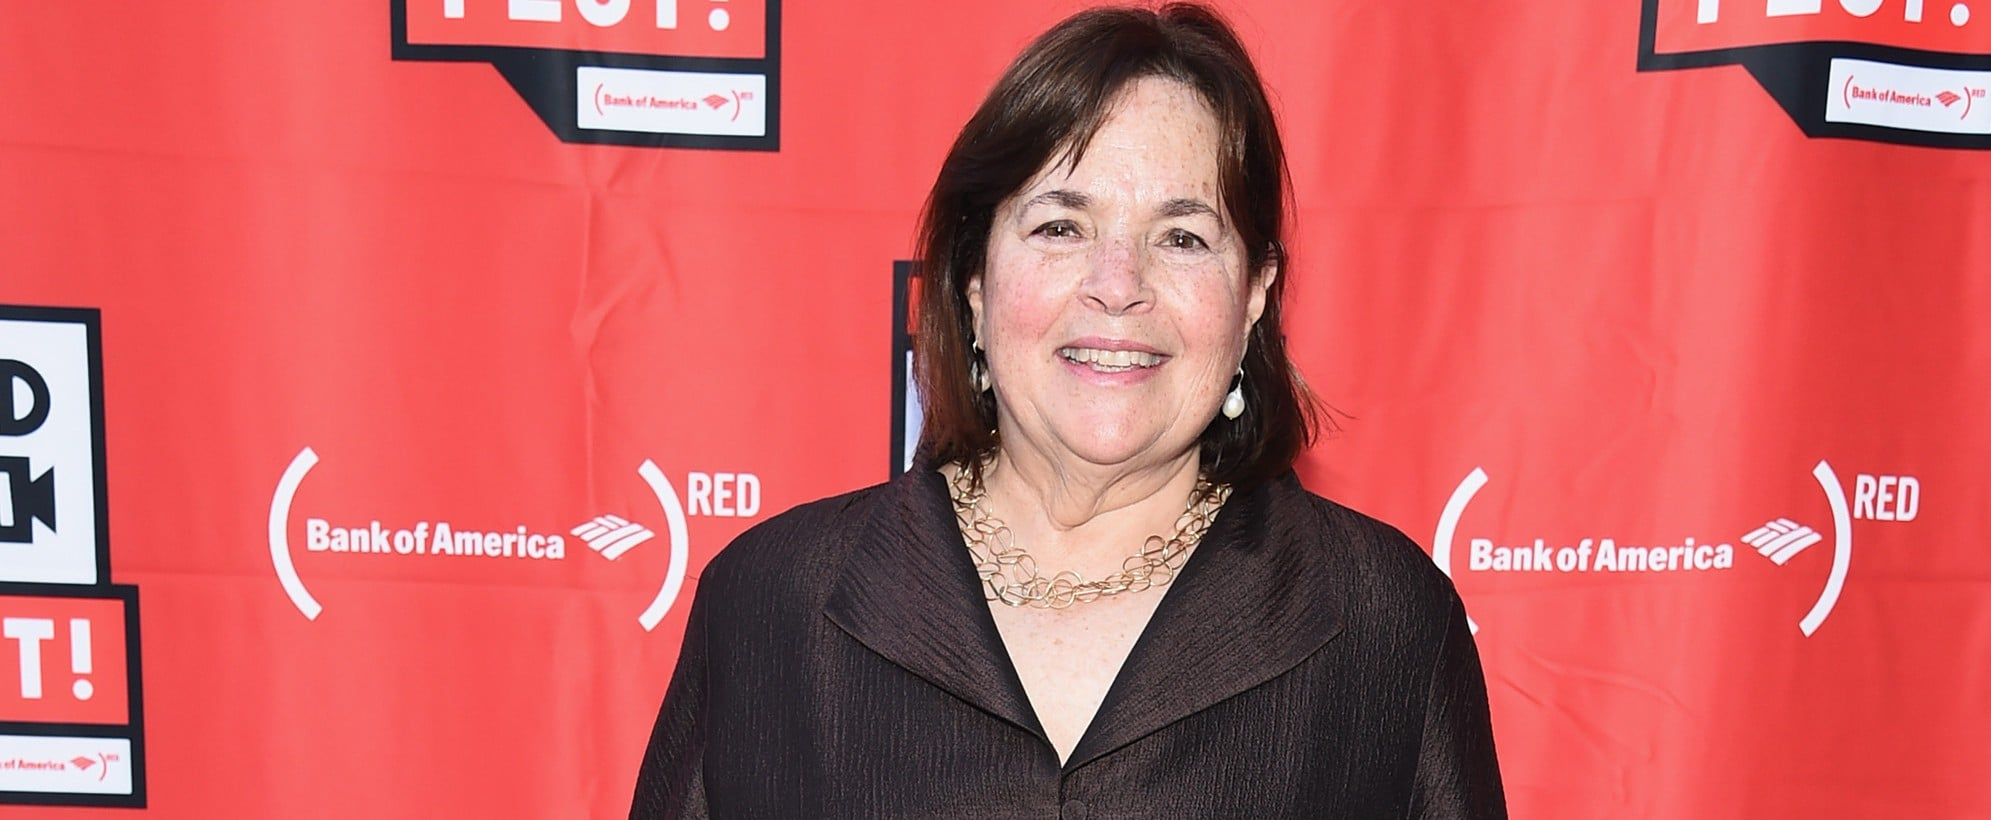 What Is Ina Garten's Favorite Fast Food?